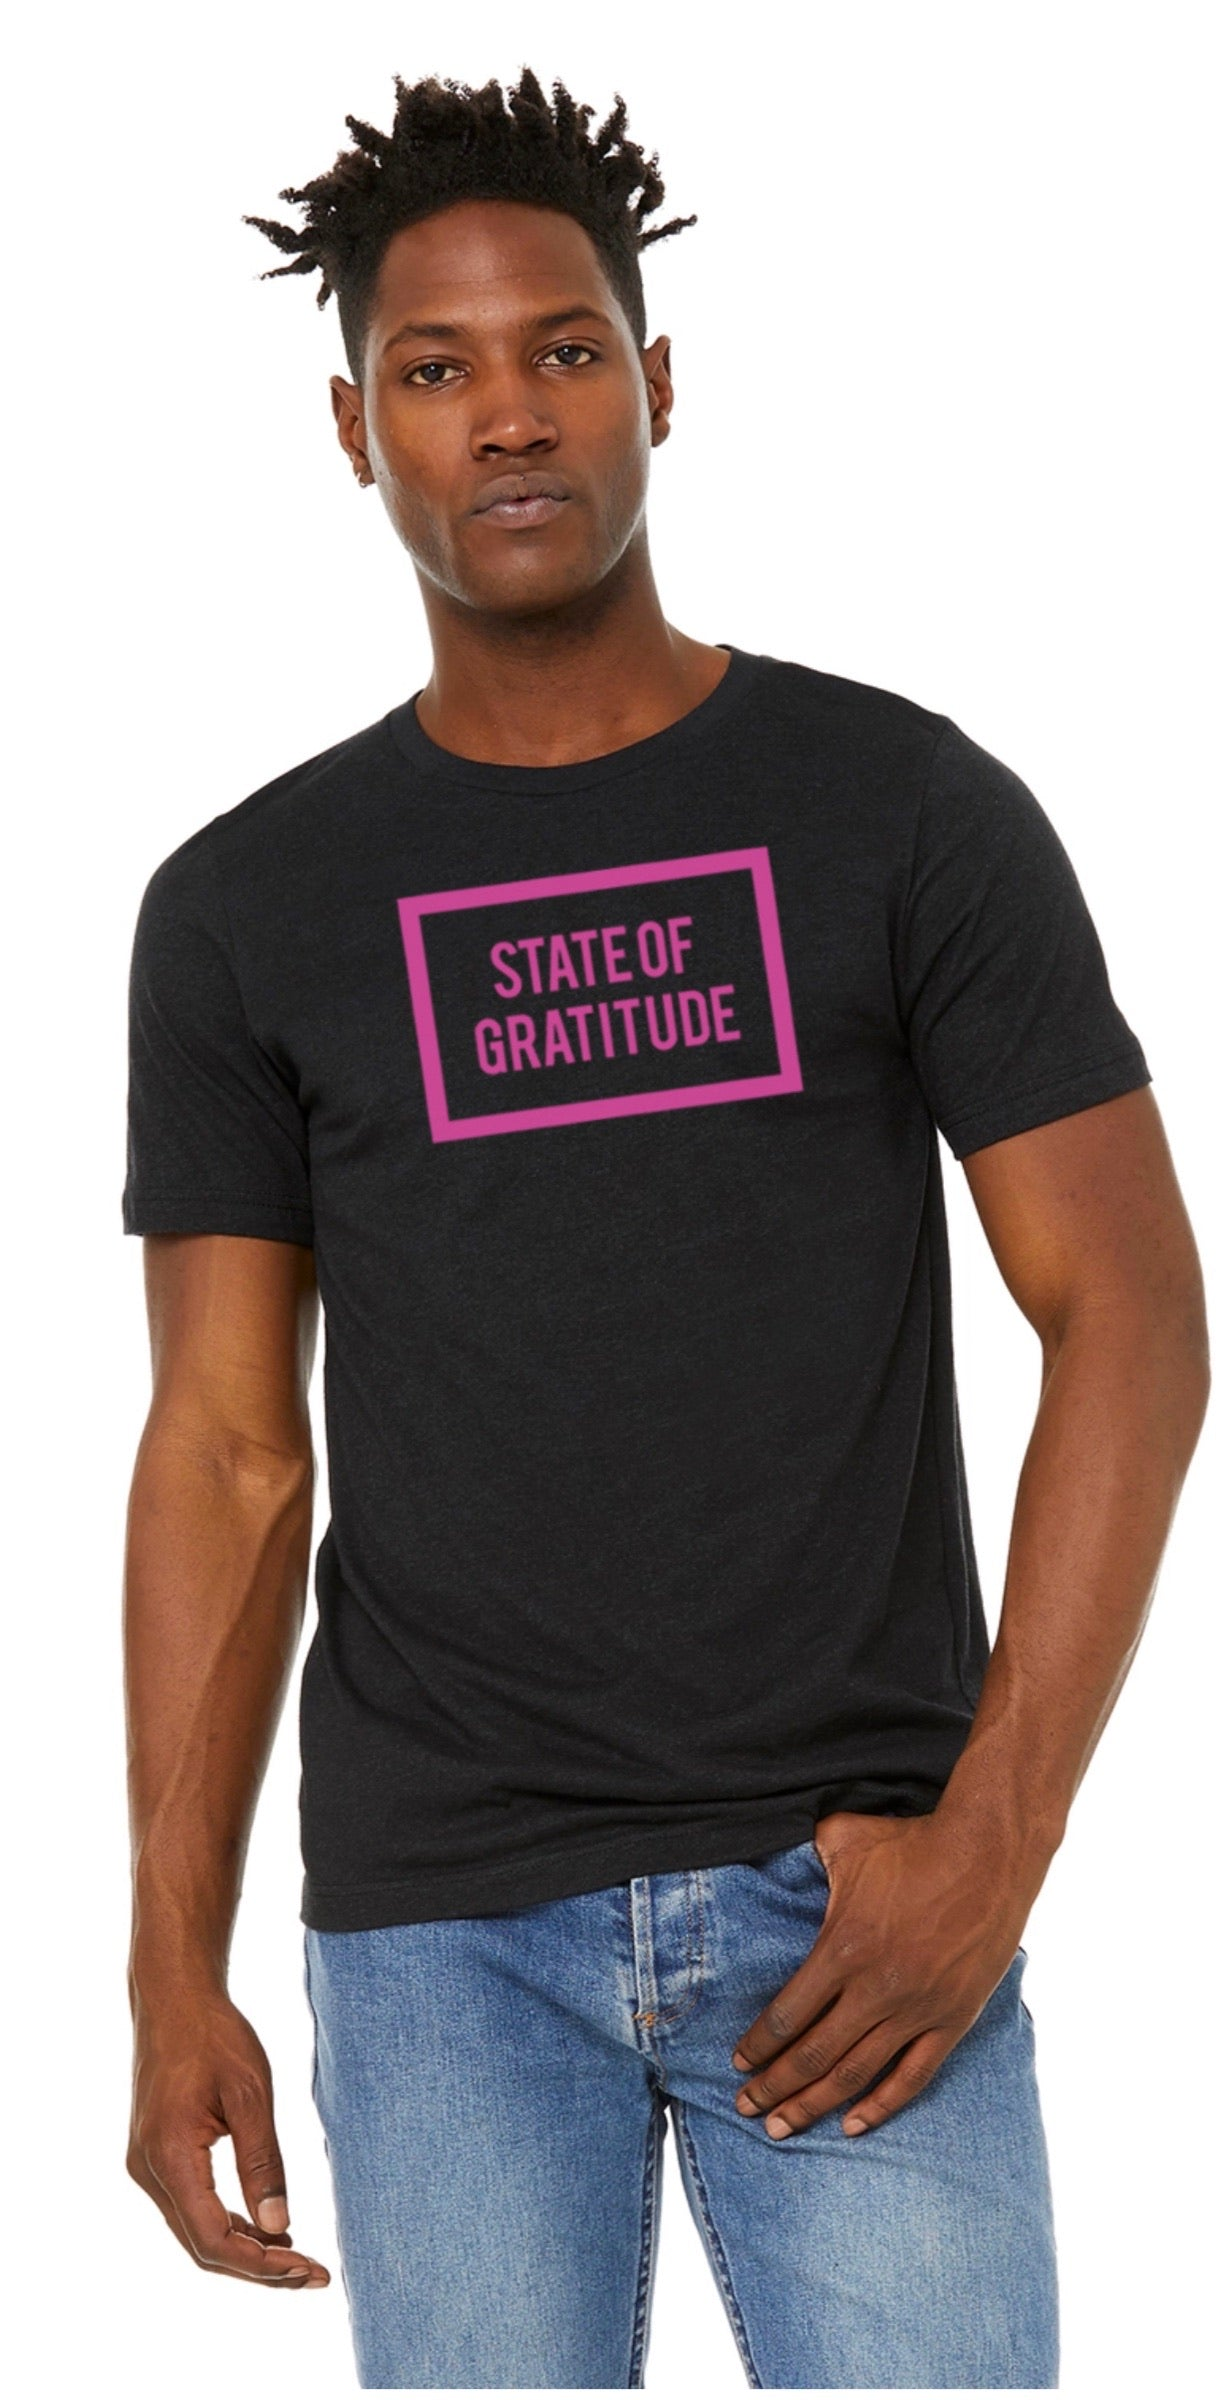 STATE OF GRATITUDE x Cancer Awareness Month